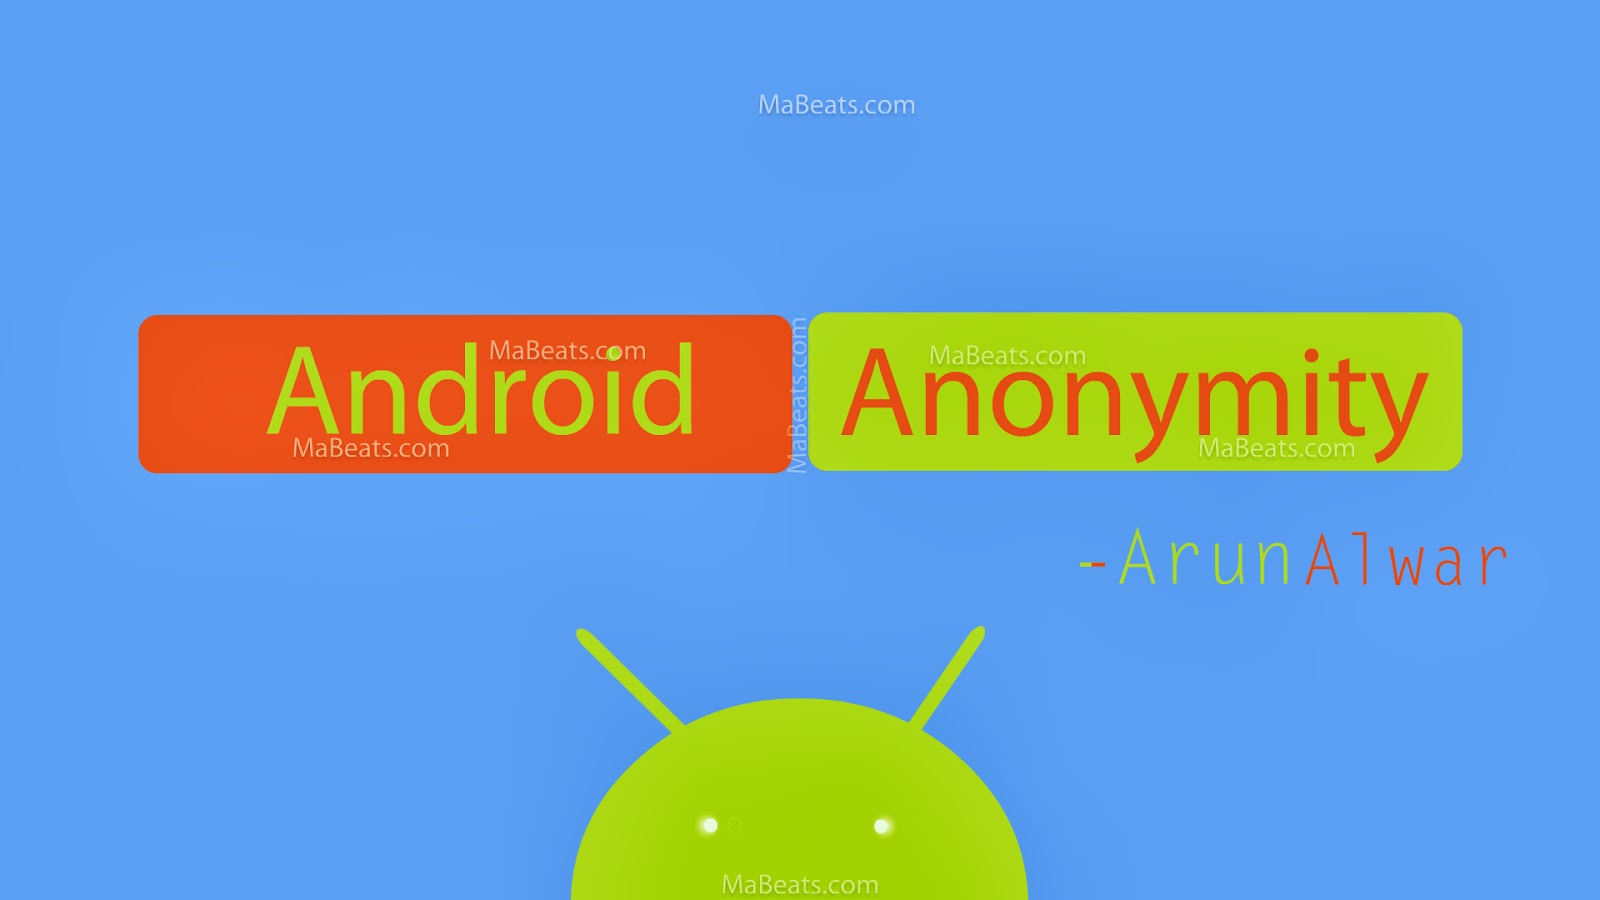 Android Anonymity - privacy in Android devices